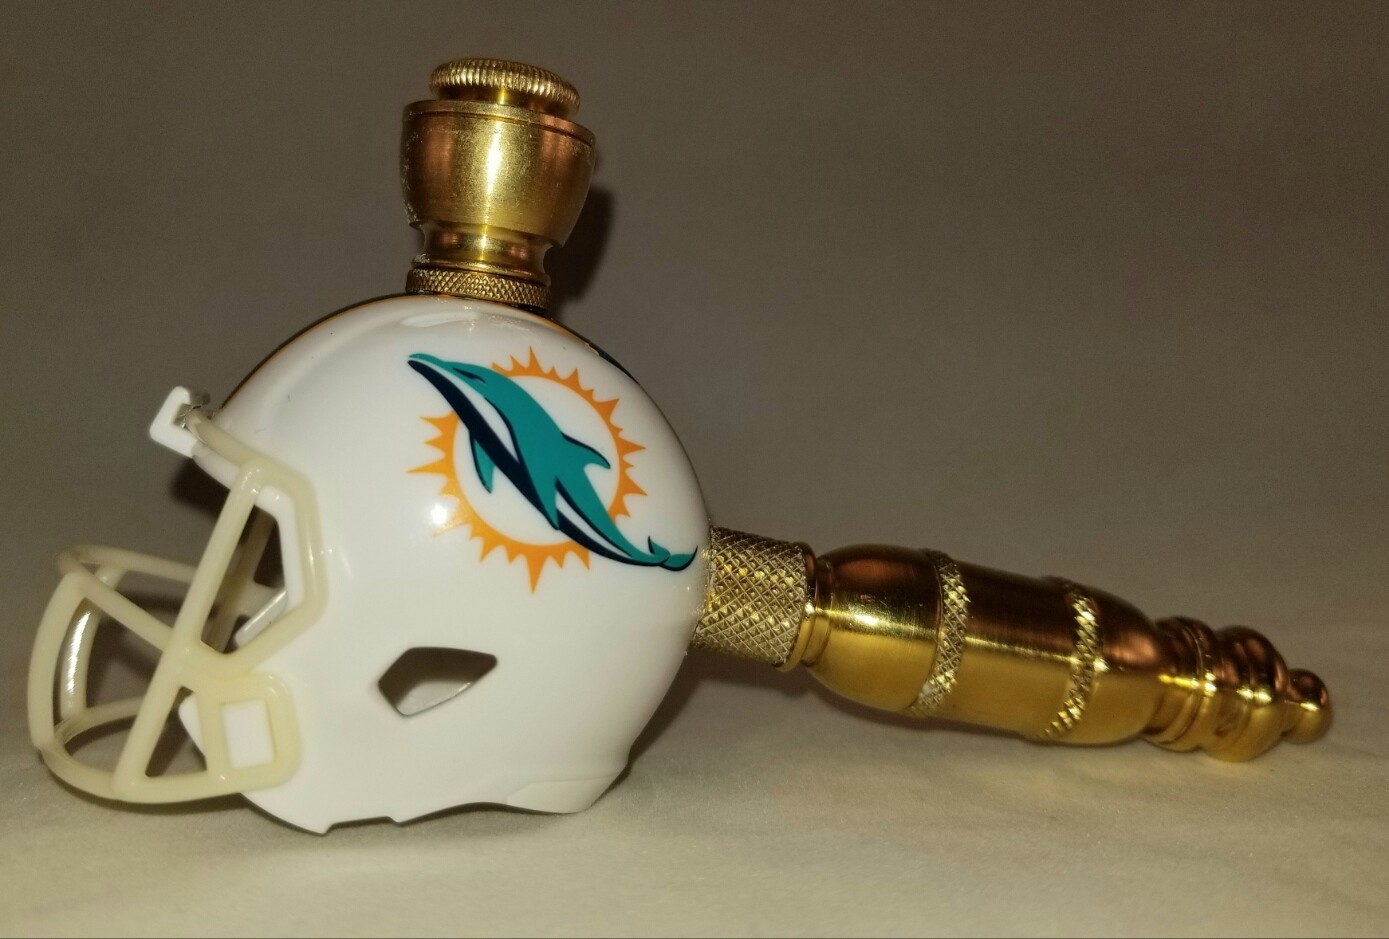 MIAMI DOLPHINS NFL FOOTBALL HELMET SMOKING PIPE Straight/Brass